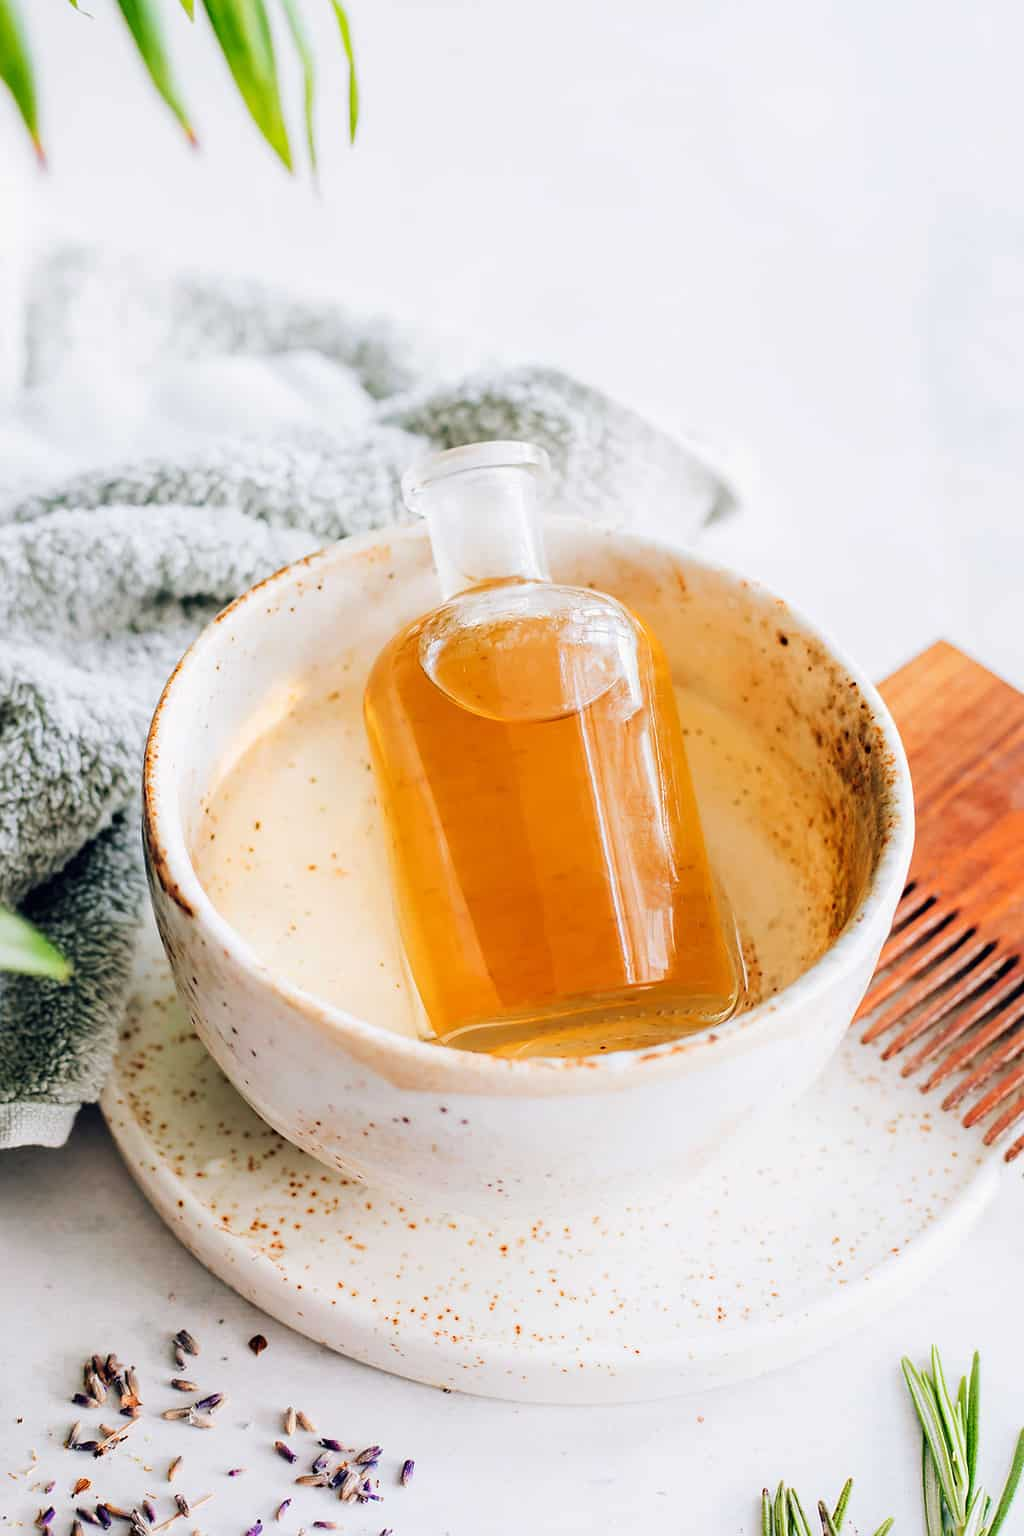 The best ways to use castor oil to help grow hair